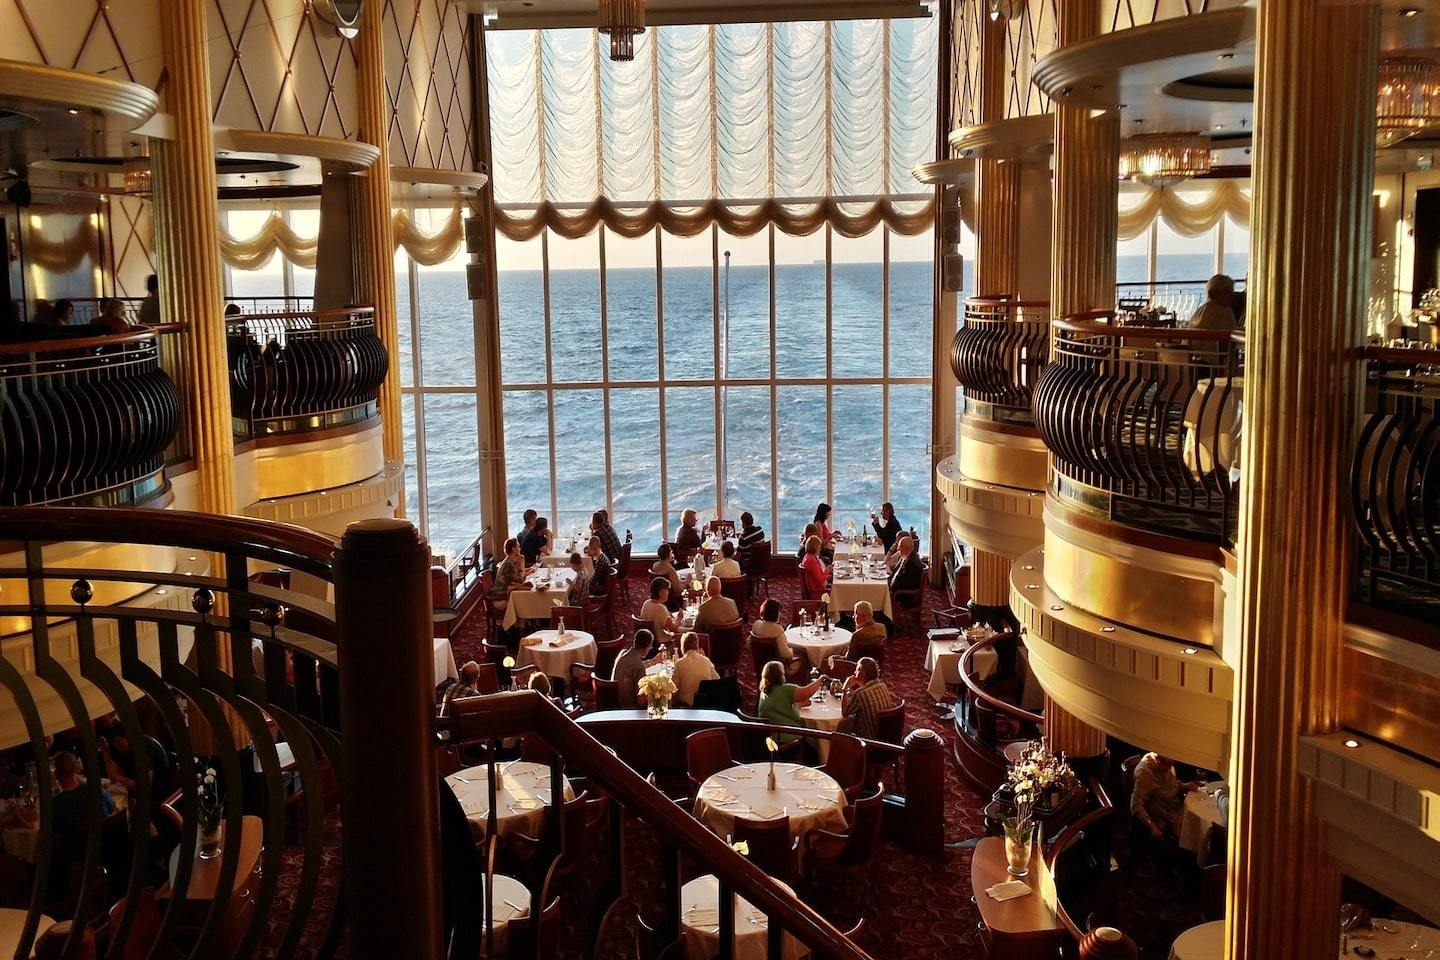 people dining at golden hour on a cruise ship with water outside of the window